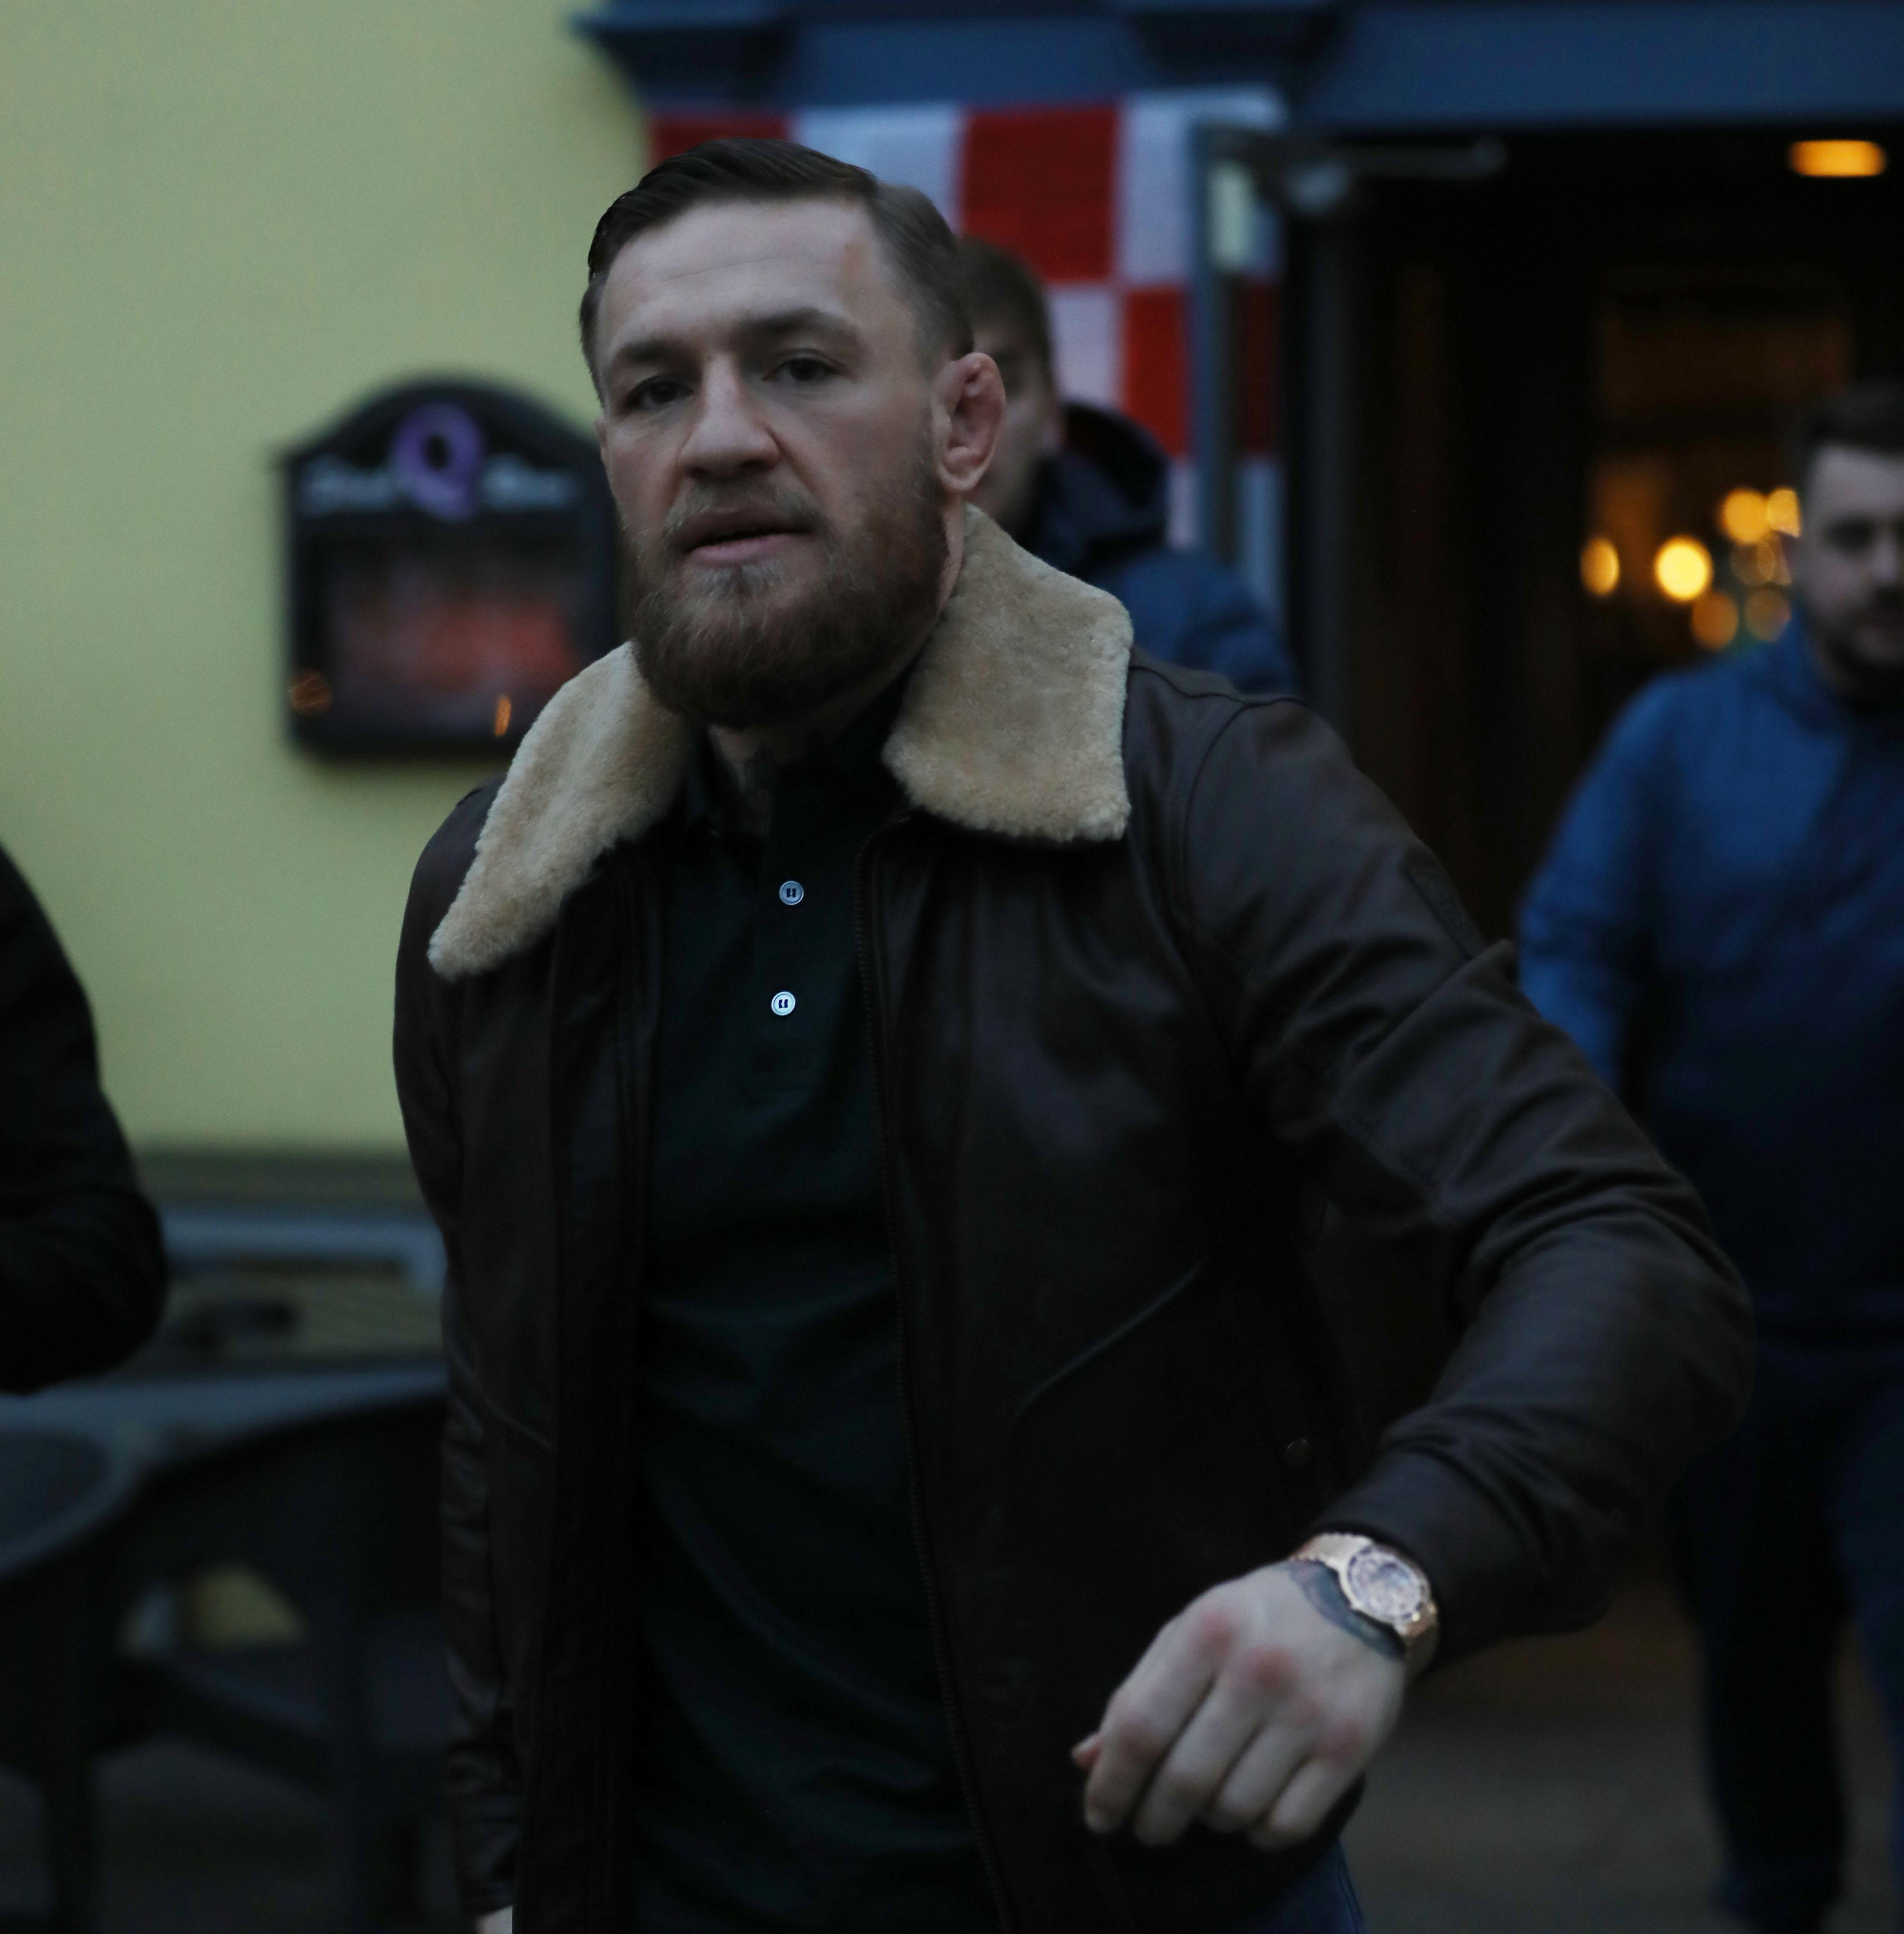 UFC superstar Conor McGregor has now been charged with assault by New York police